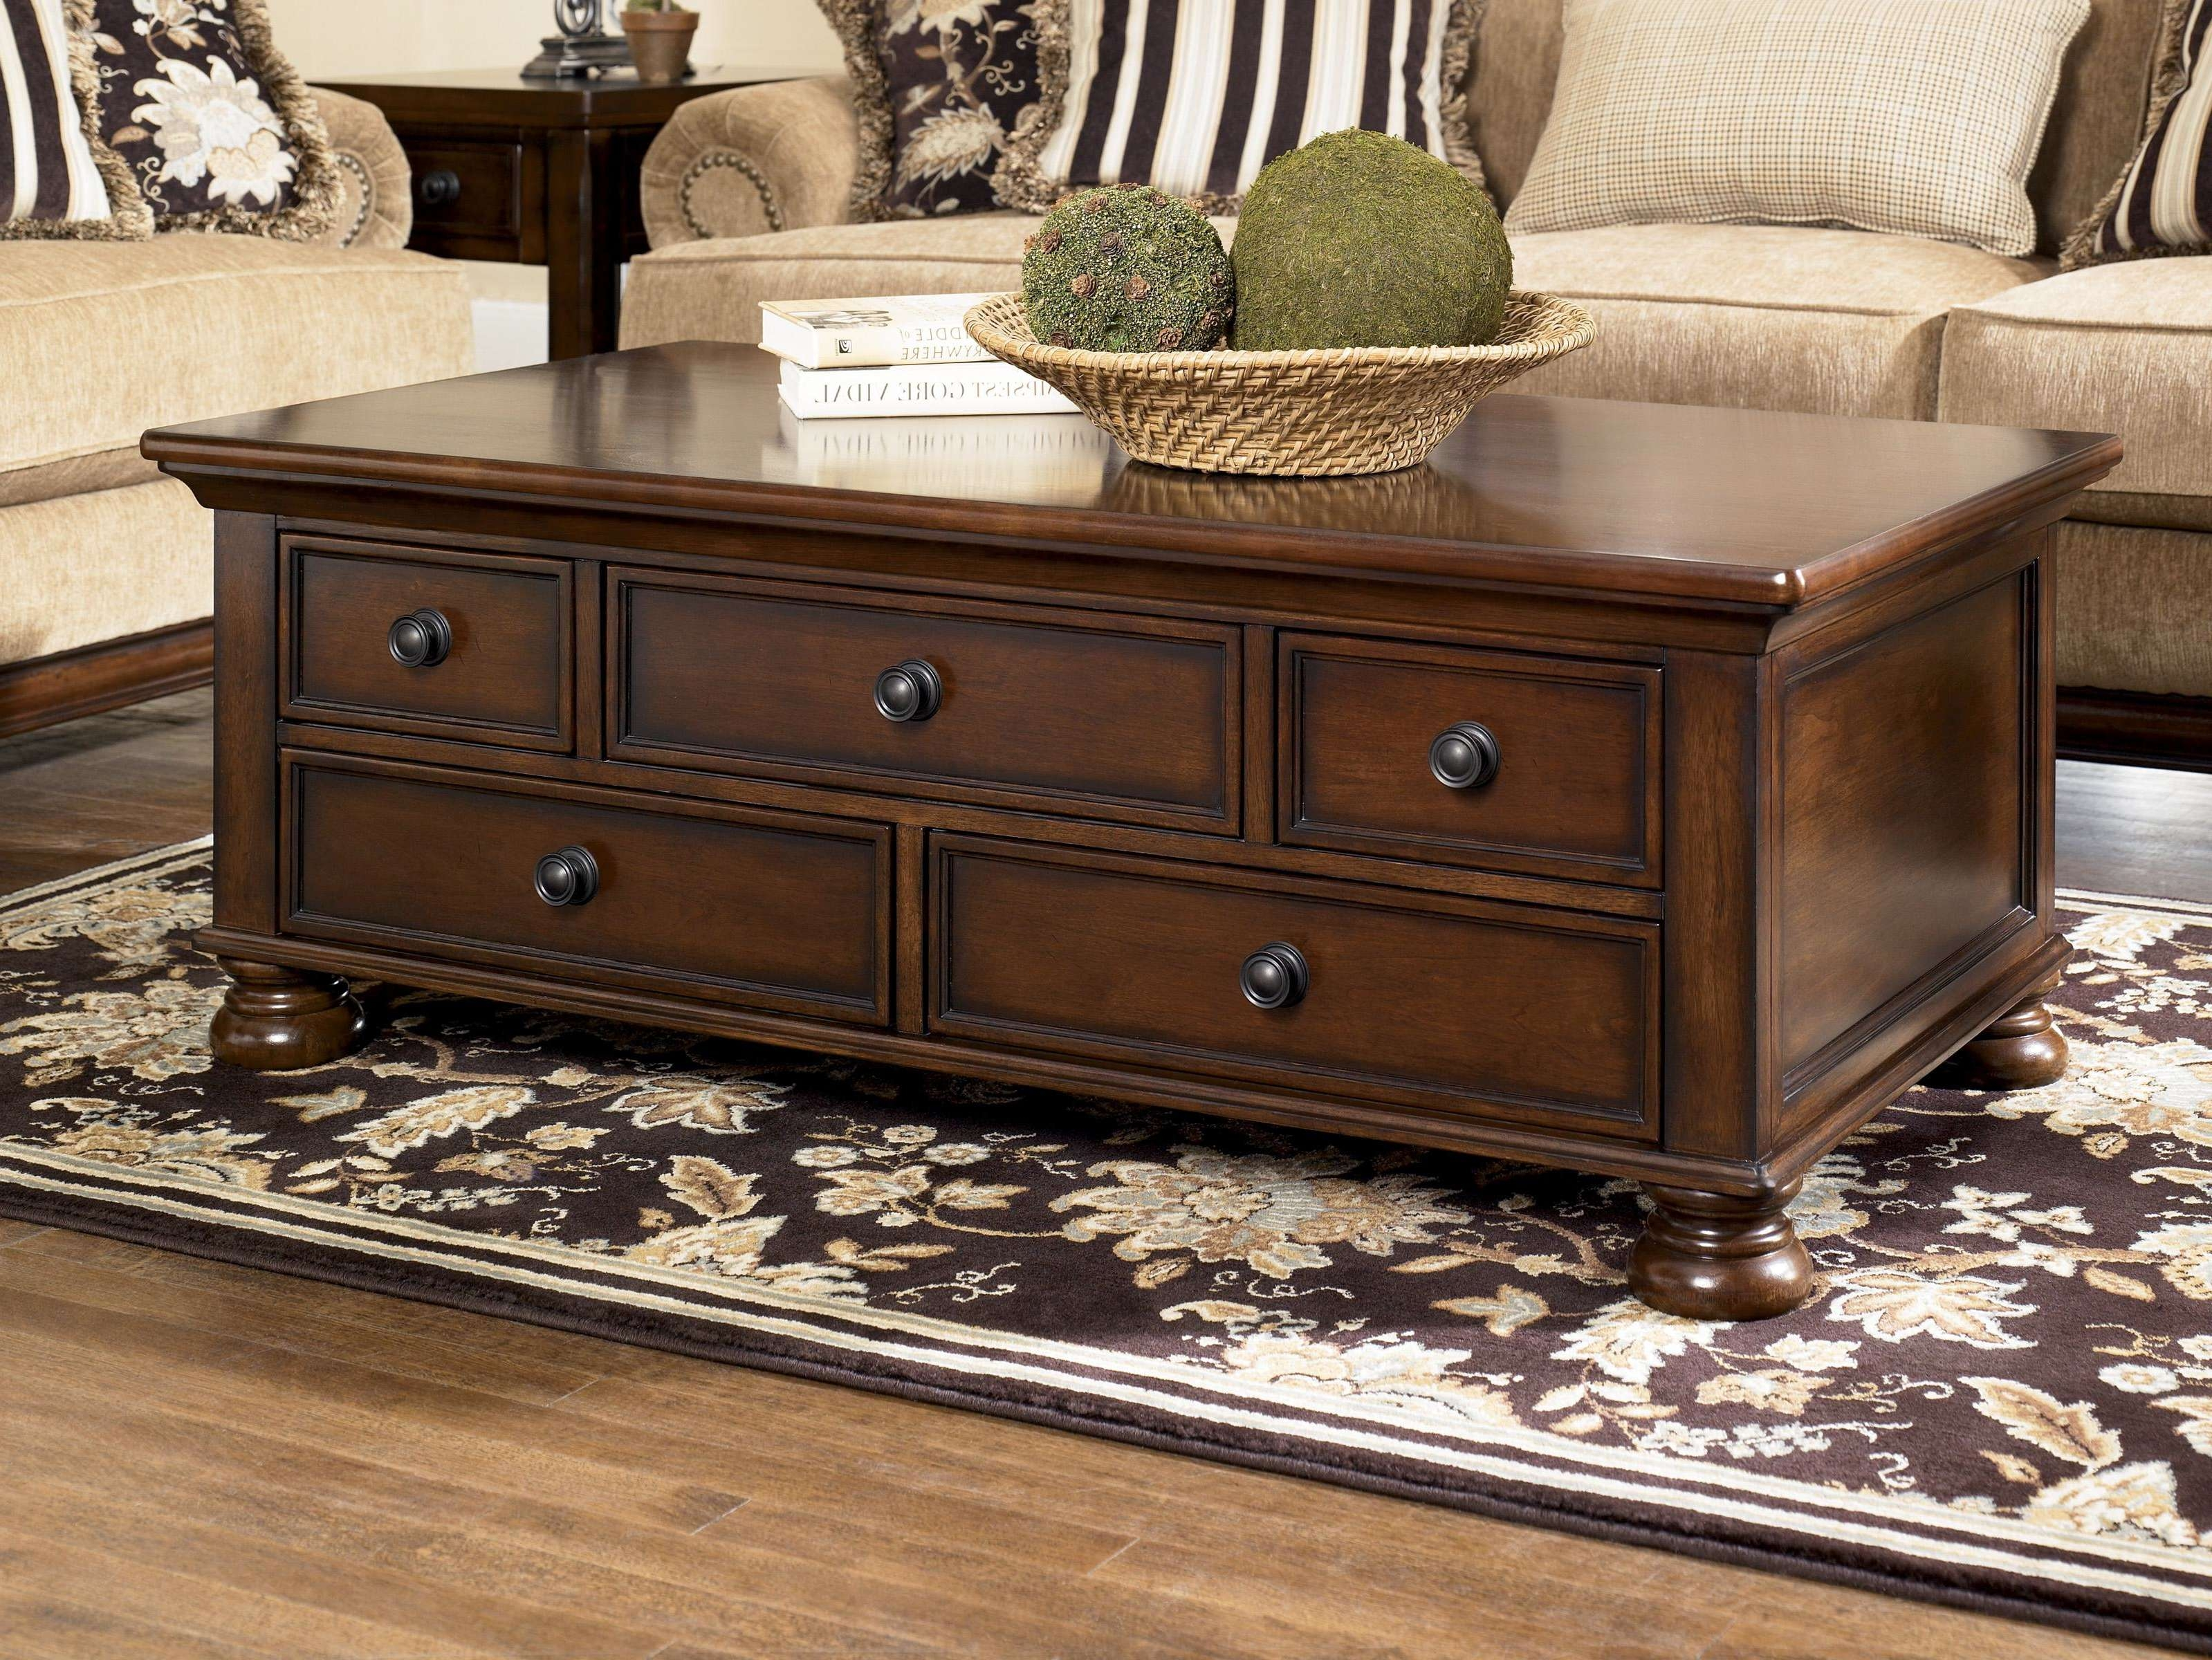 Famous Solid Oak Coffee Table With Storage Pertaining To Solid Wood Coffee Table With Storage (View 6 of 20)